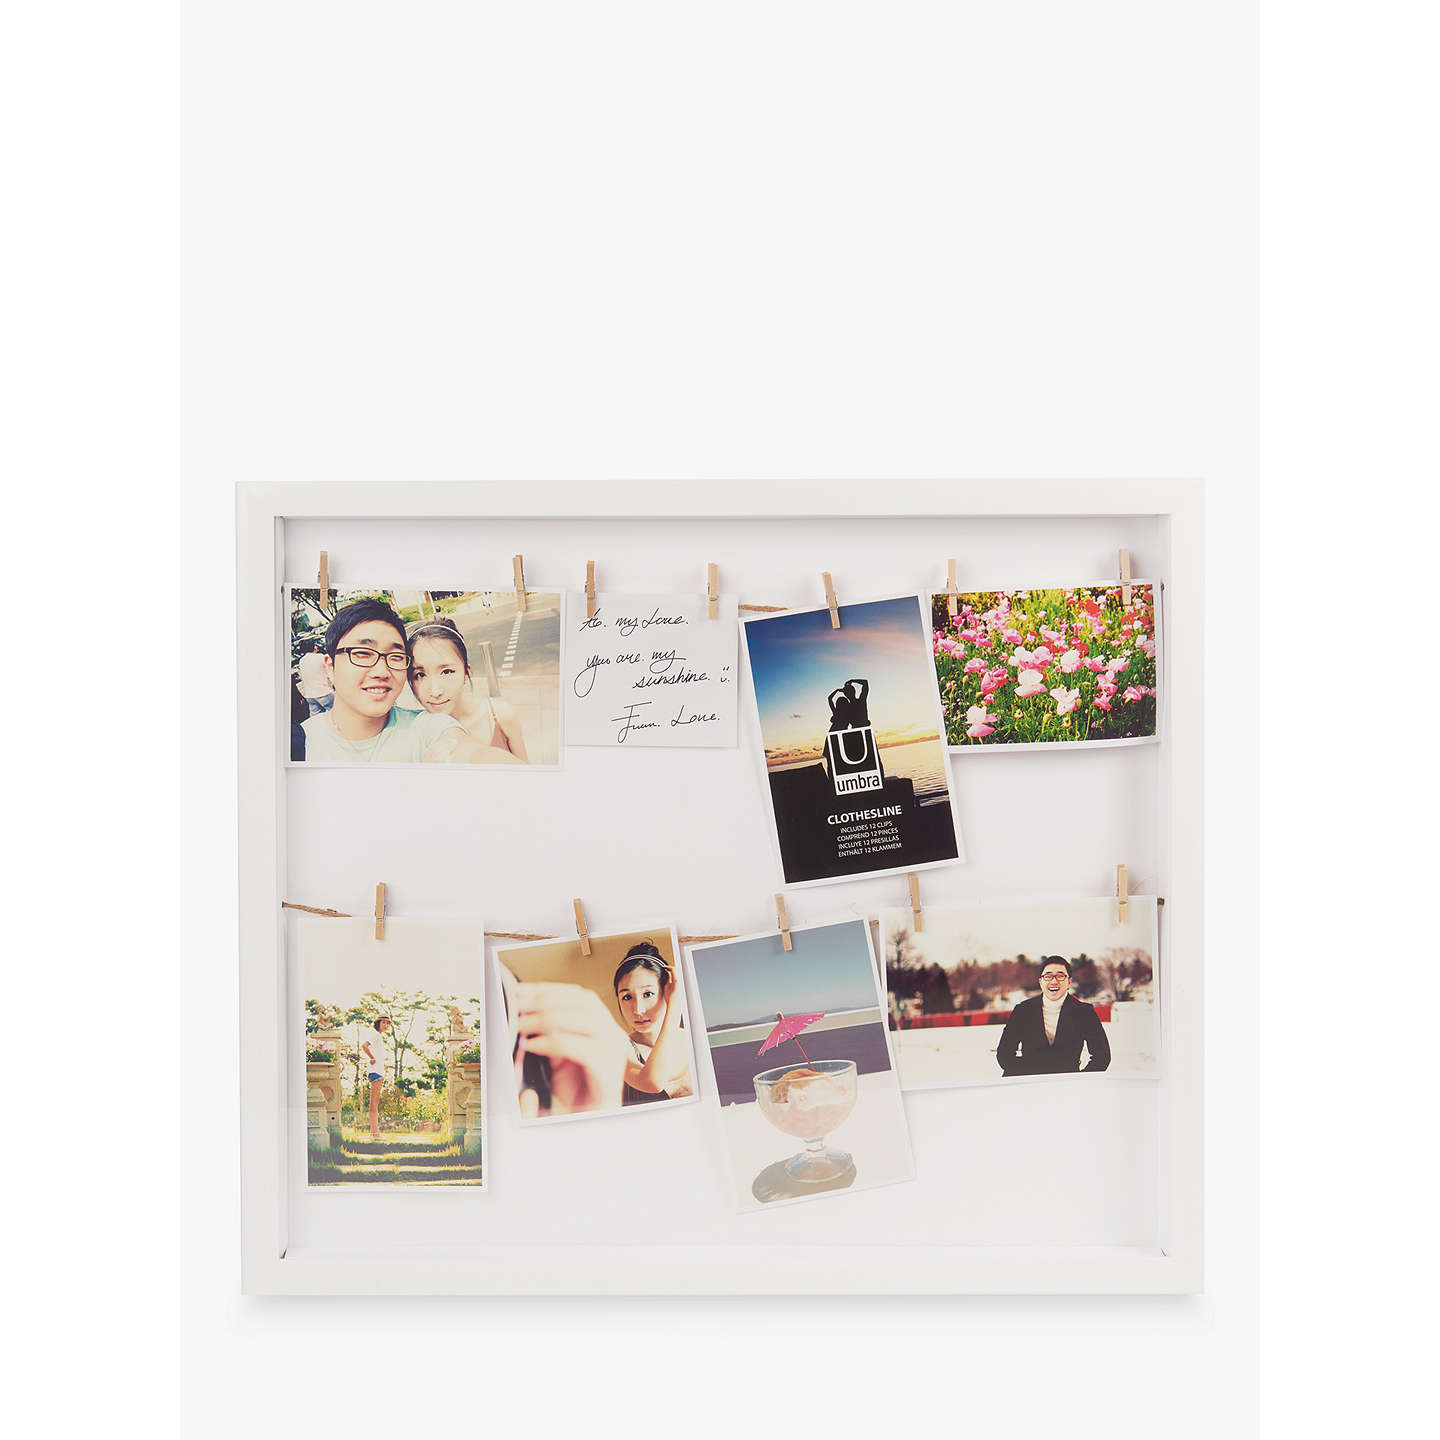 Umbra Clothesline Multi Aperture Photo Frame, White by Umbra